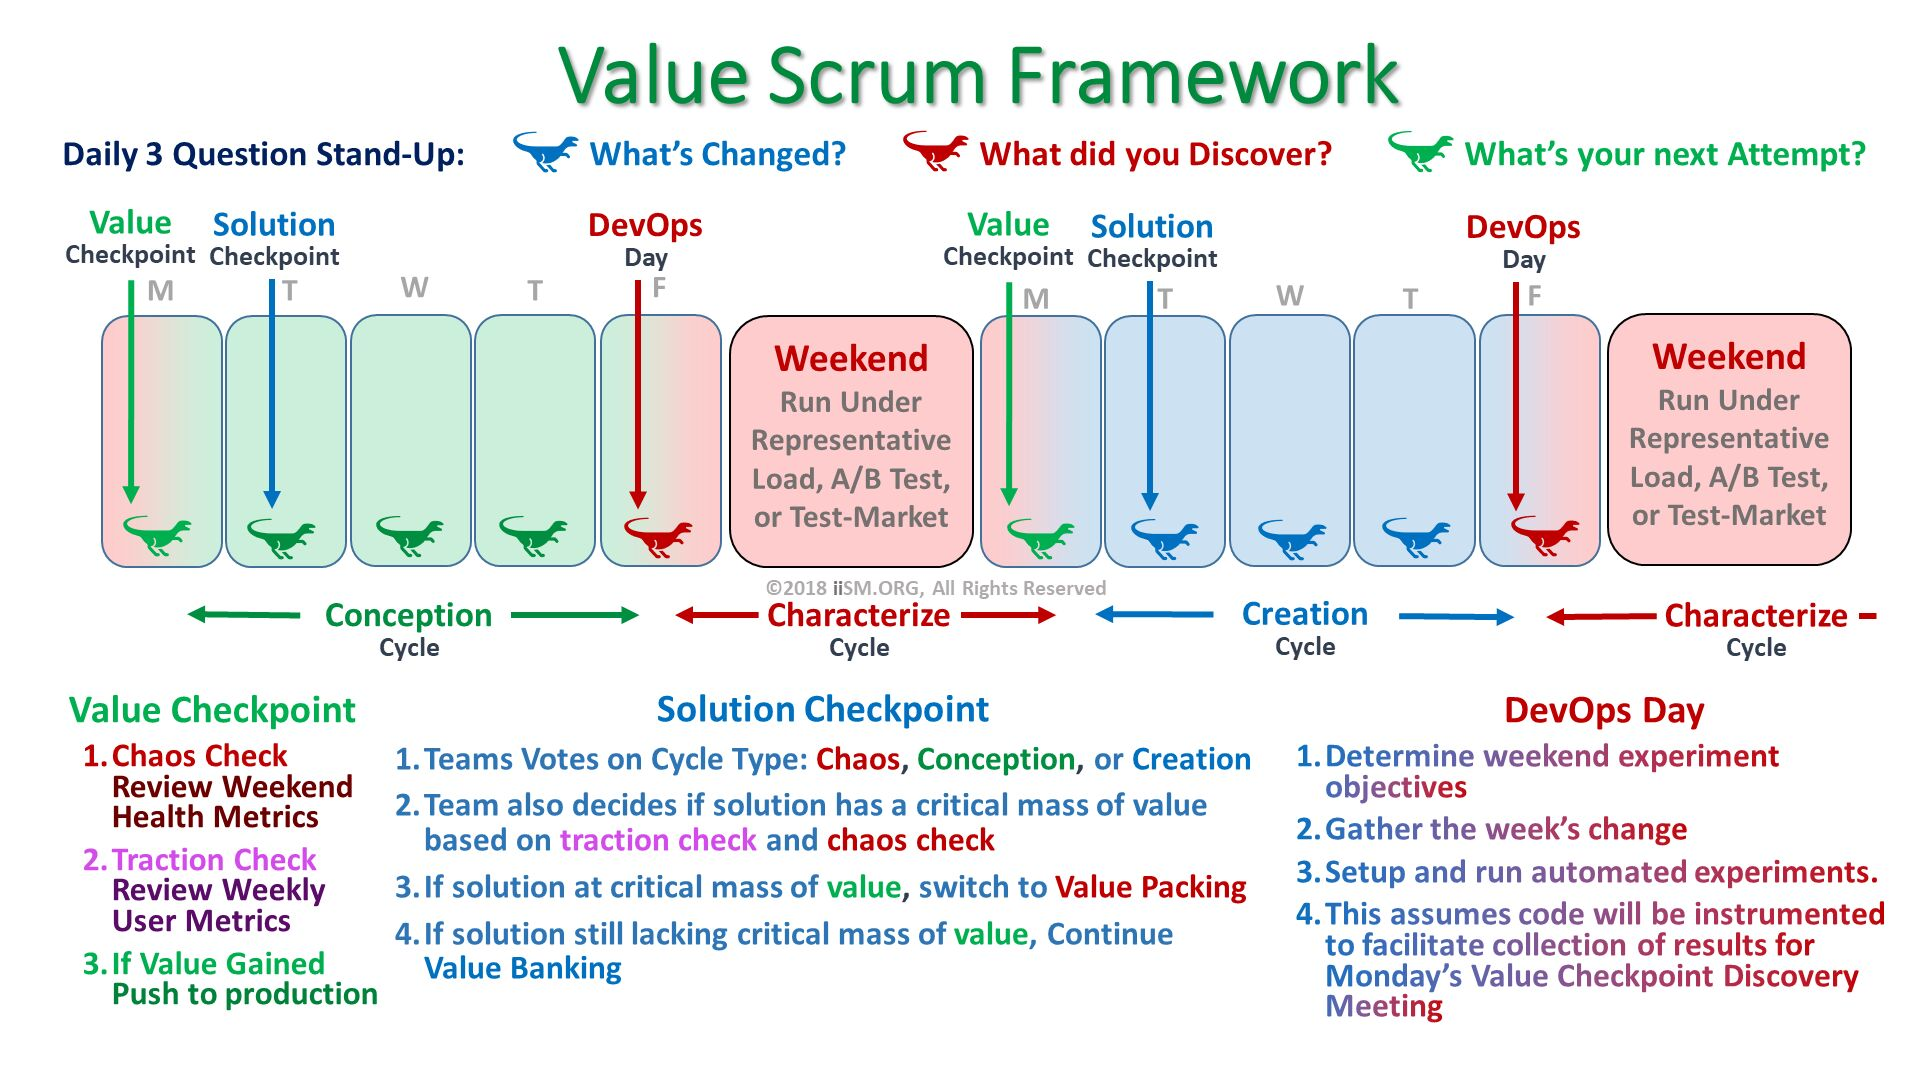 Value Scrum Framework. ©2018 iiSM.ORG, All Rights Reserved. Value Checkpoint Chaos Check Review Weekend Health Metrics Traction CheckReview Weekly User Metrics If Value Gained Push to production. Solution Checkpoint Teams Votes on Cycle Type: Chaos, Conception, or Creation Team also decides if solution has a critical mass of value based on traction check and chaos check  If solution at critical mass of value, switch to Value Packing If solution still lacking critical mass of value, Continue Value Banking. Daily 3 Question Stand-Up:               What's Changed?                What did you Discover?                What's your next Attempt?   . DevOps Day Determine weekend experiment objectives Gather the week's change Setup and run automated experiments. This assumes code will be instrumented to facilitate collection of results for Monday's Value Checkpoint Discovery Meeting.